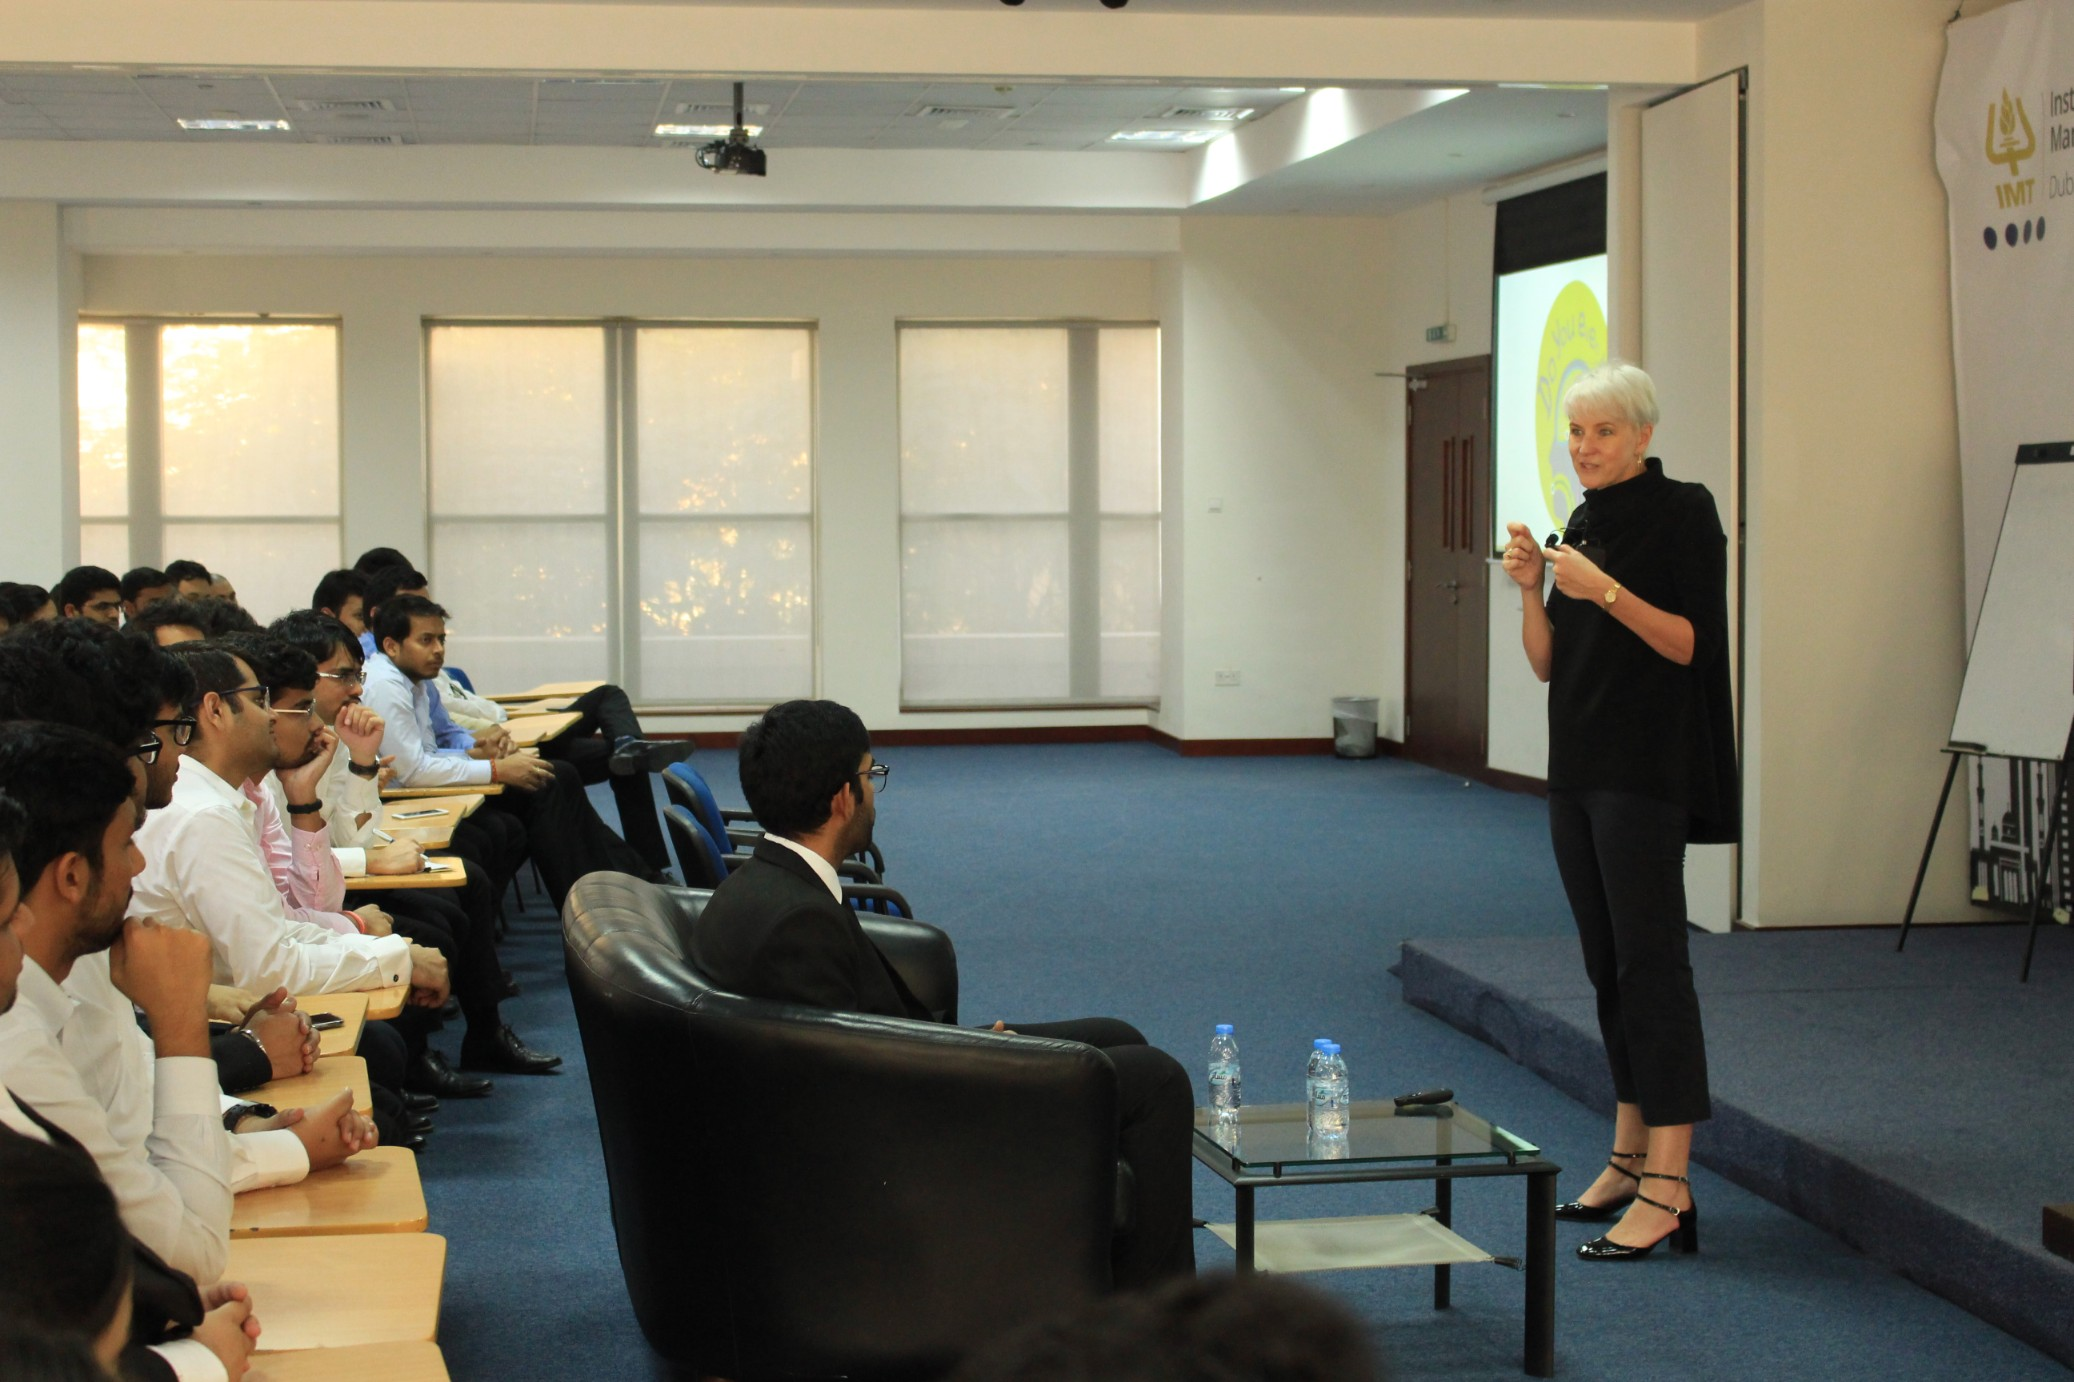 IMT Dubai students hosted Mrs. Marita Harrold